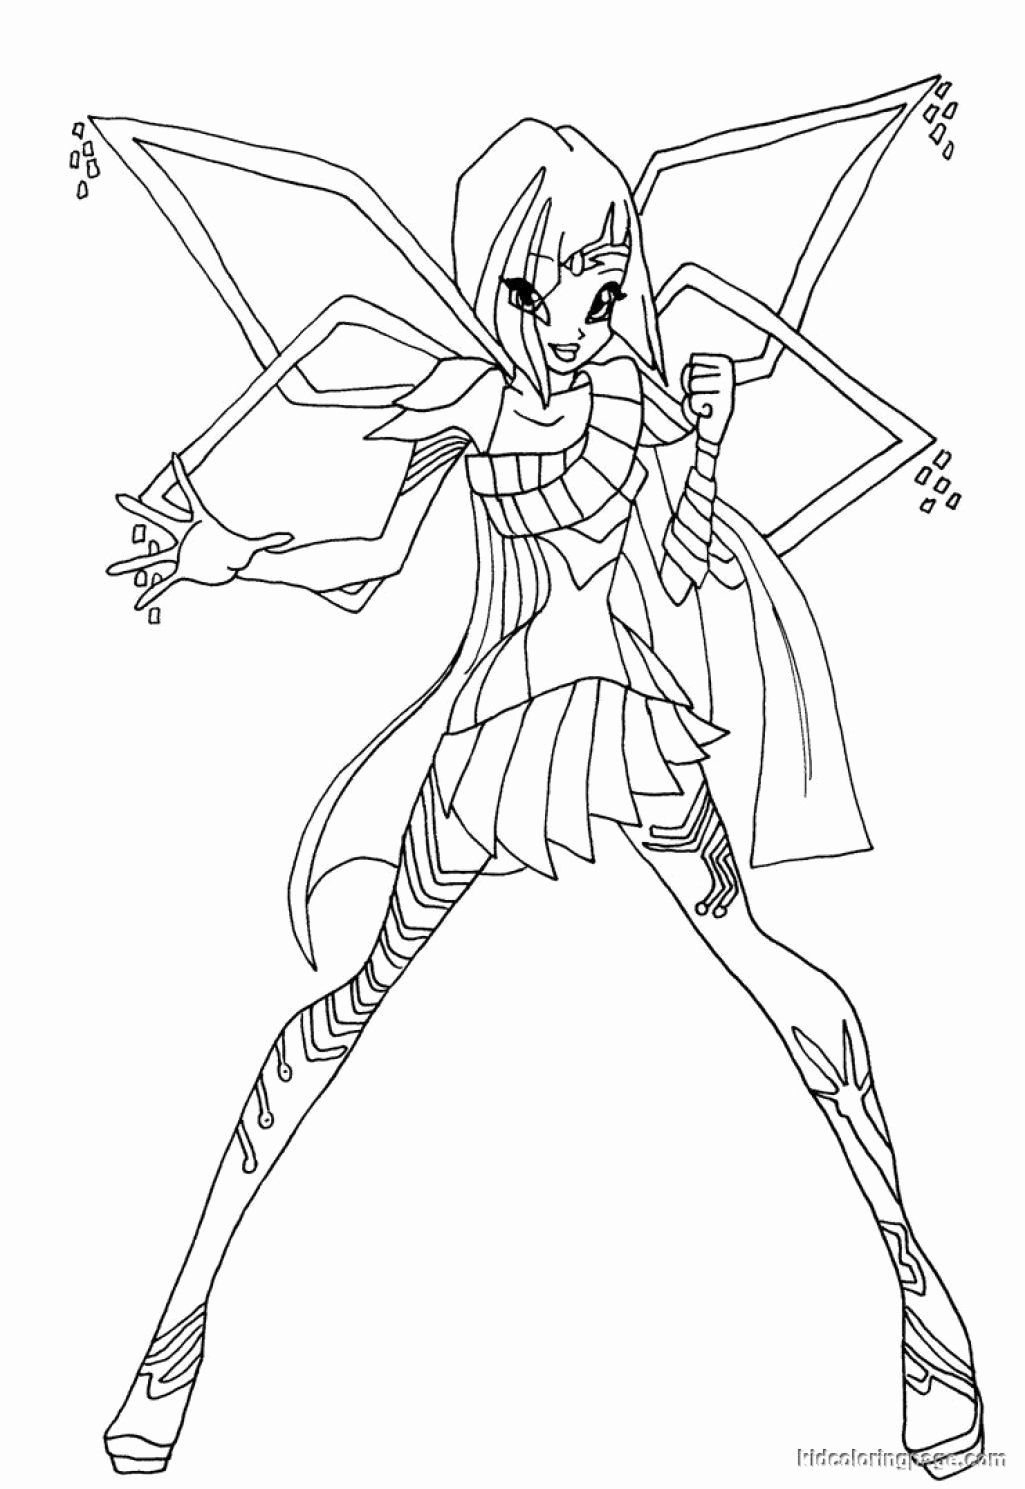 Super Bowl 50 Coloring Pages Lovely Awesome Winx Club Enchantix